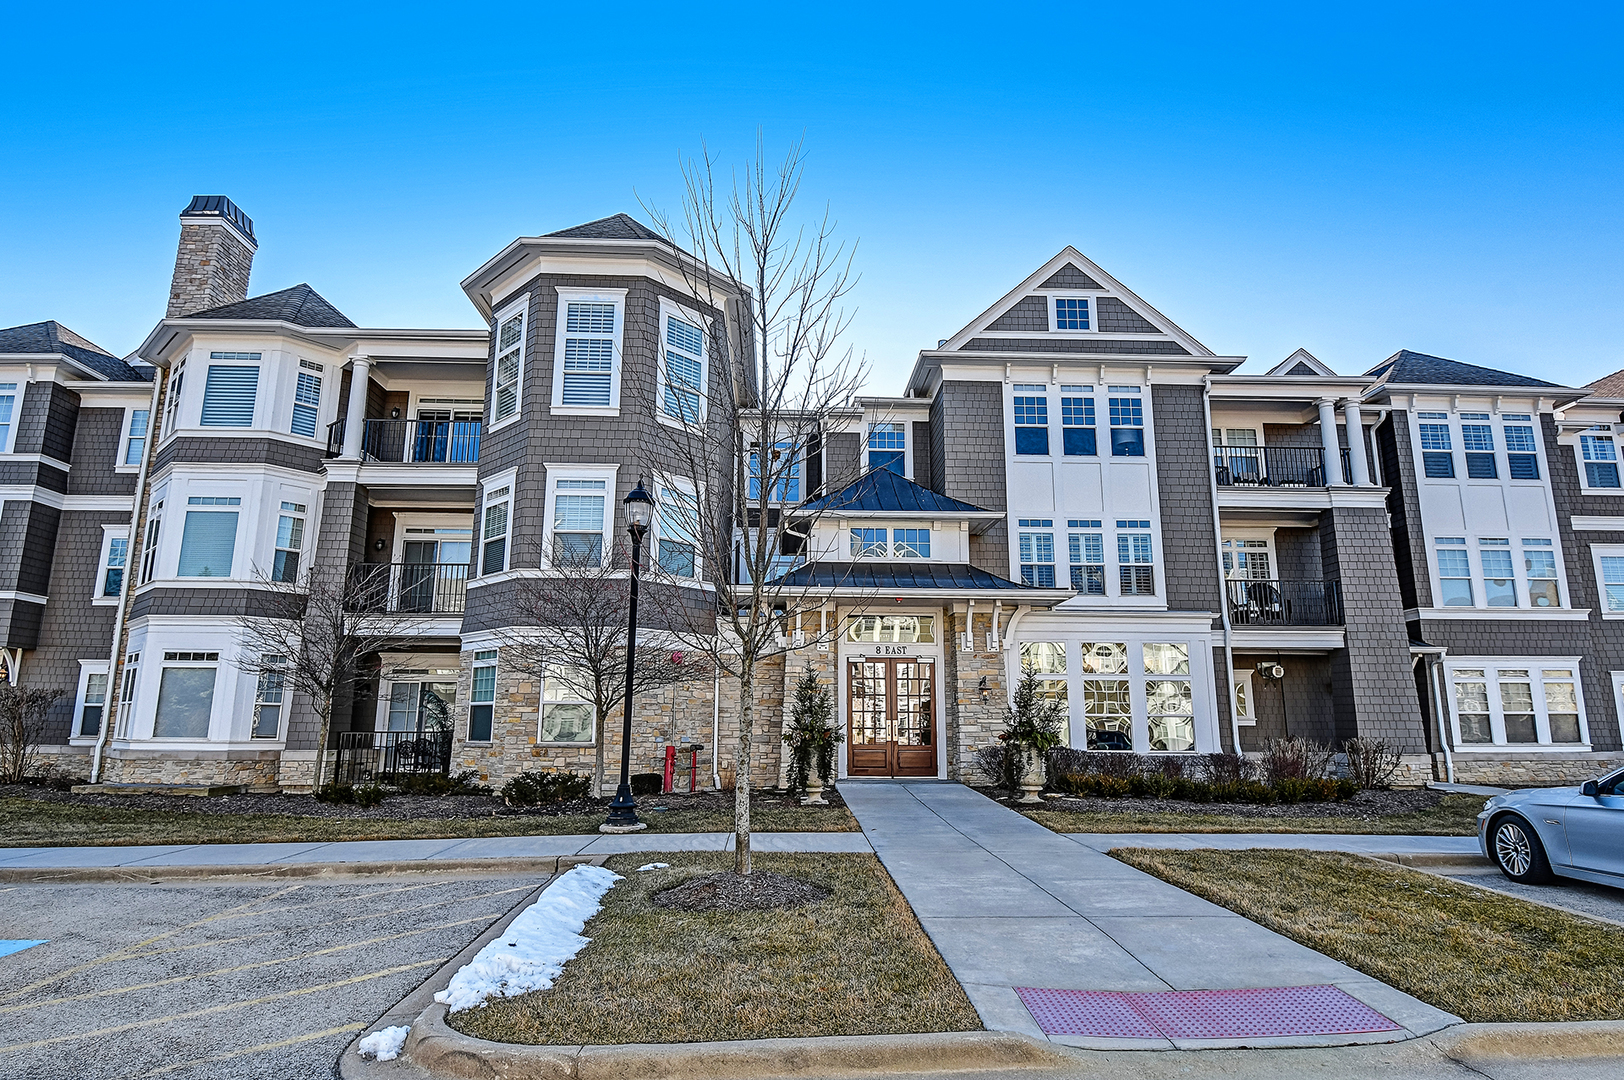 8 East KENNEDY 206, Hinsdale, Illinois, 60521